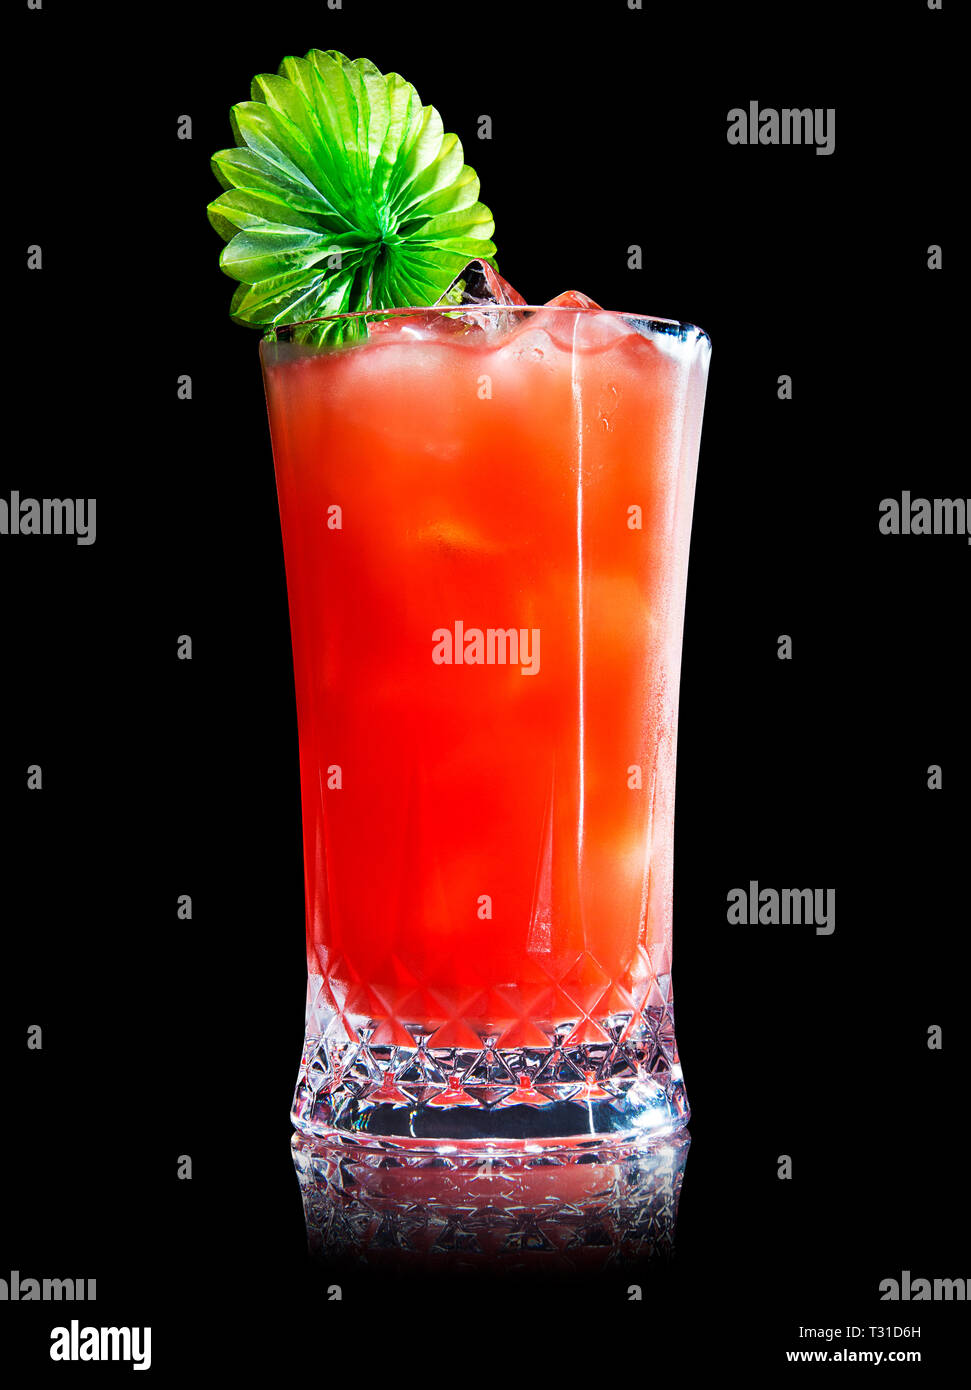 red fruit cocktail on a black background - Stock Image